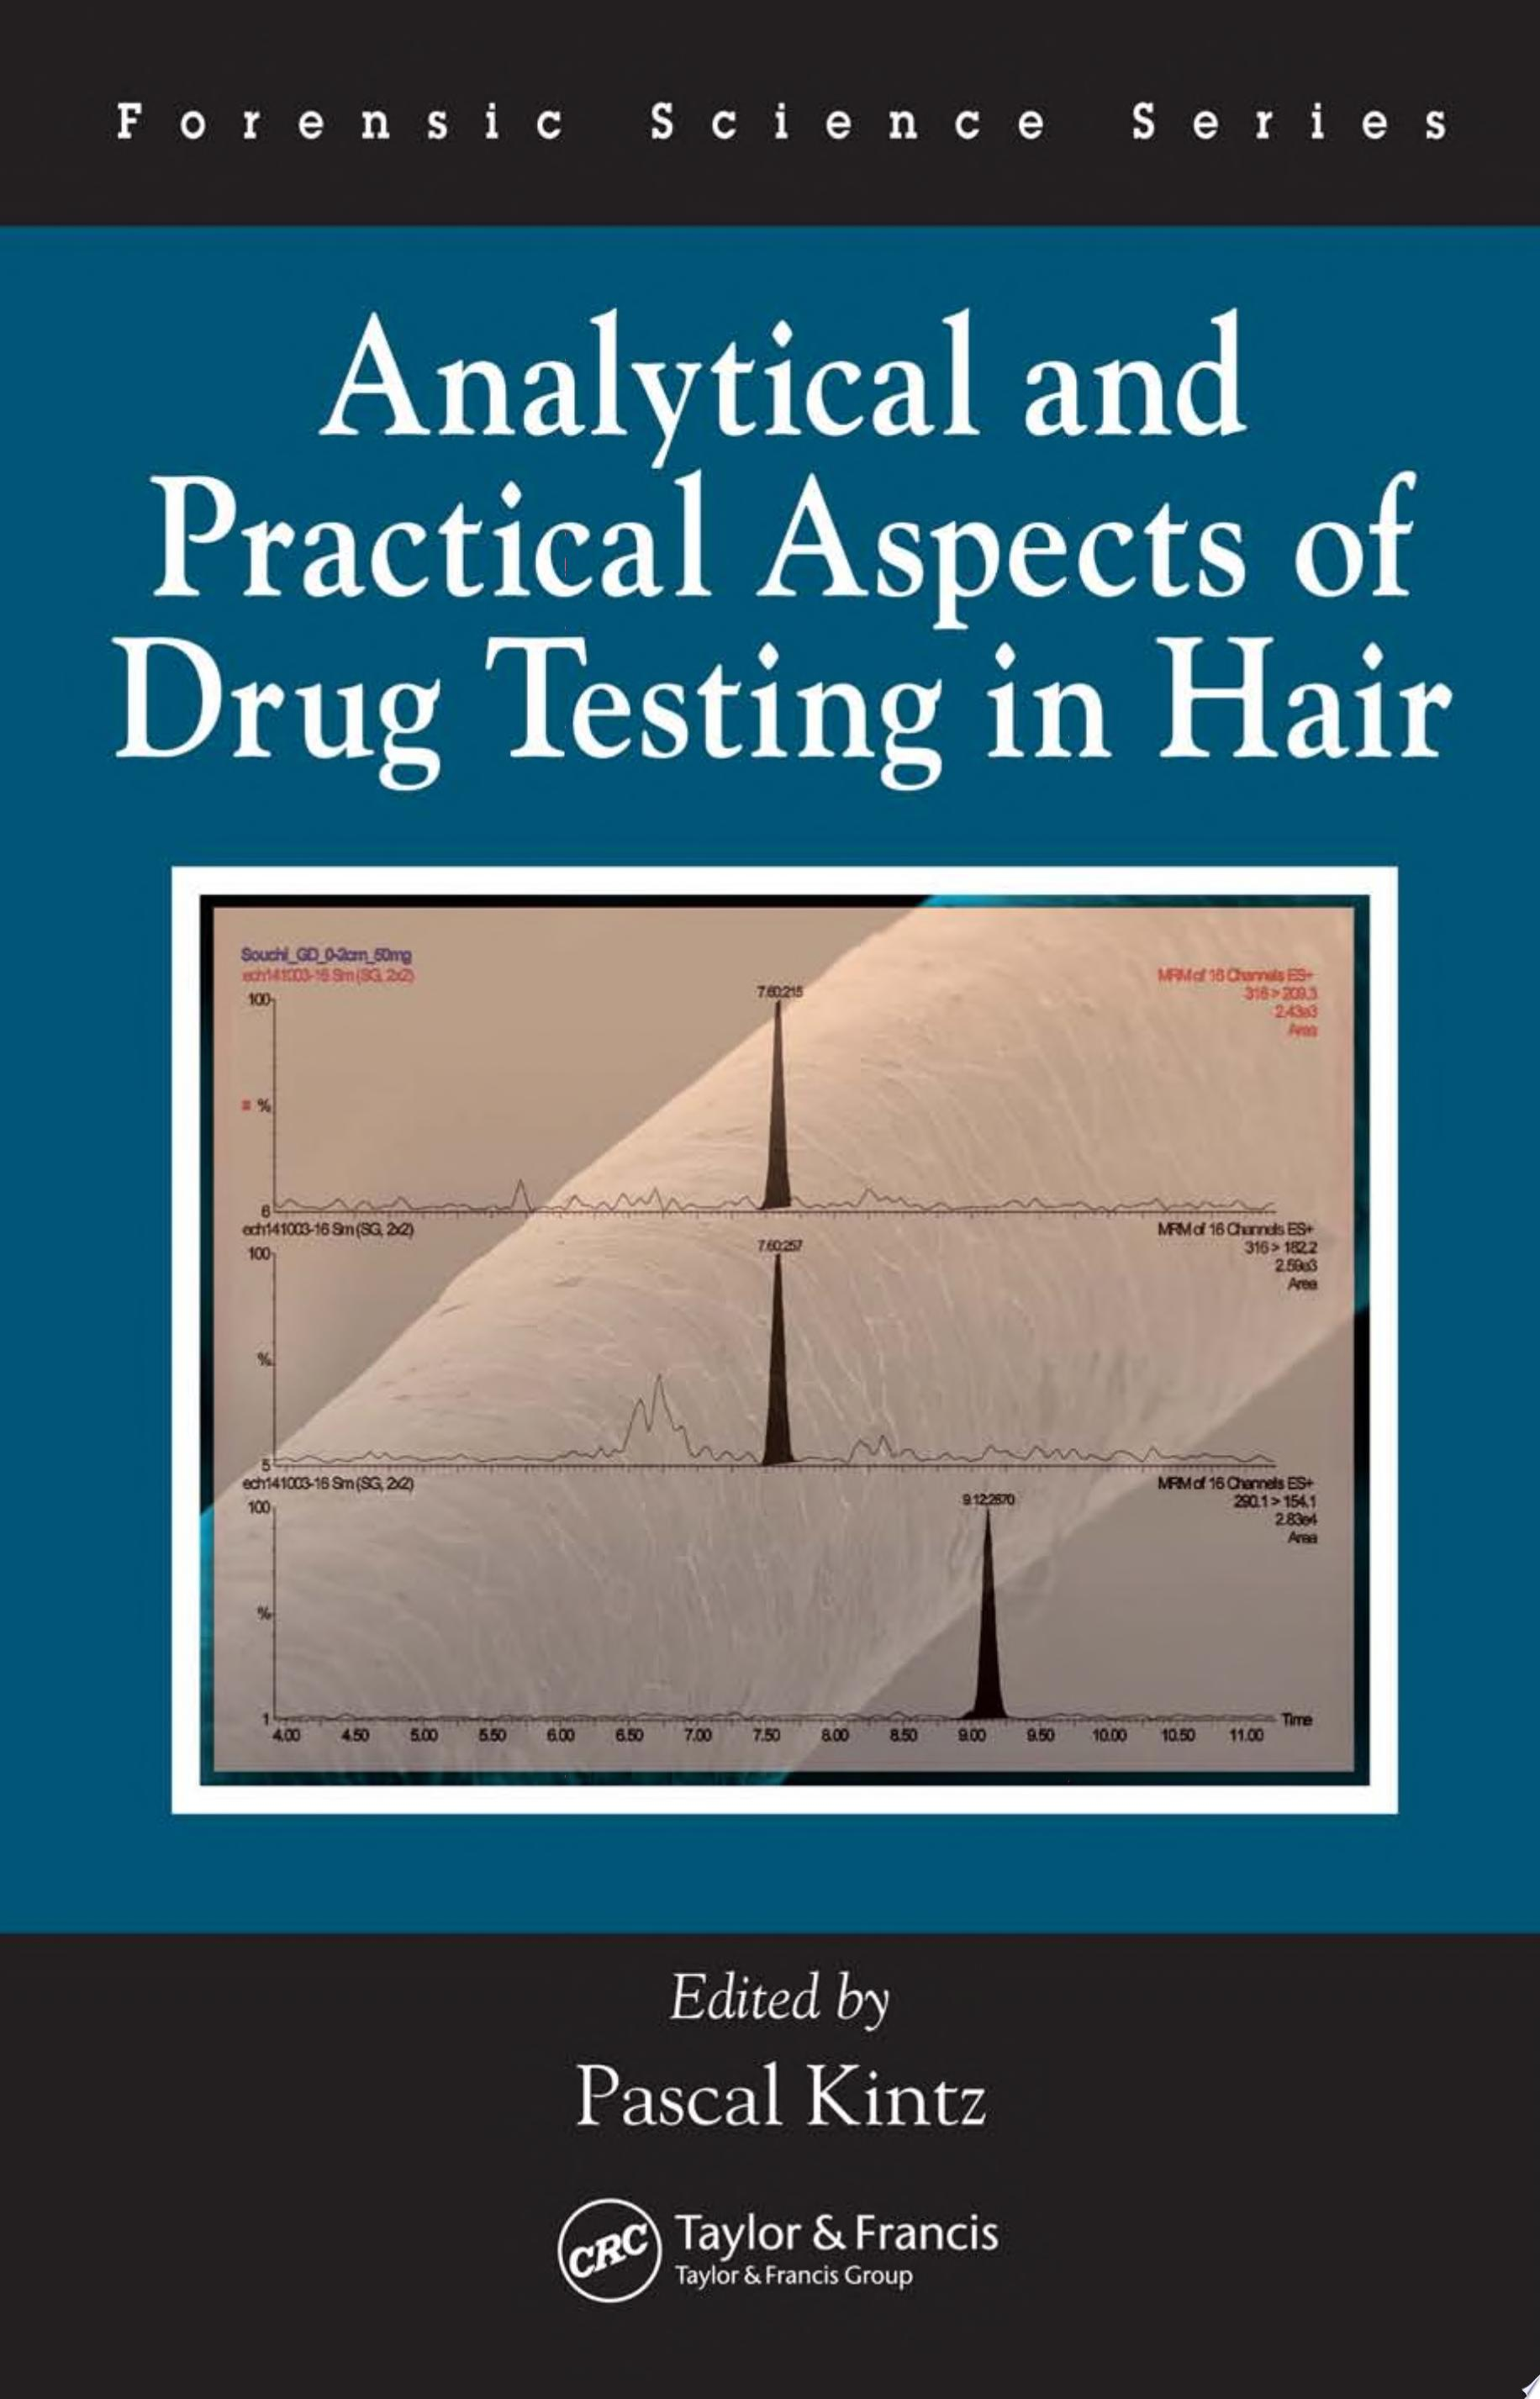 Analytical and Practical Aspects of Drug Testing in Hair